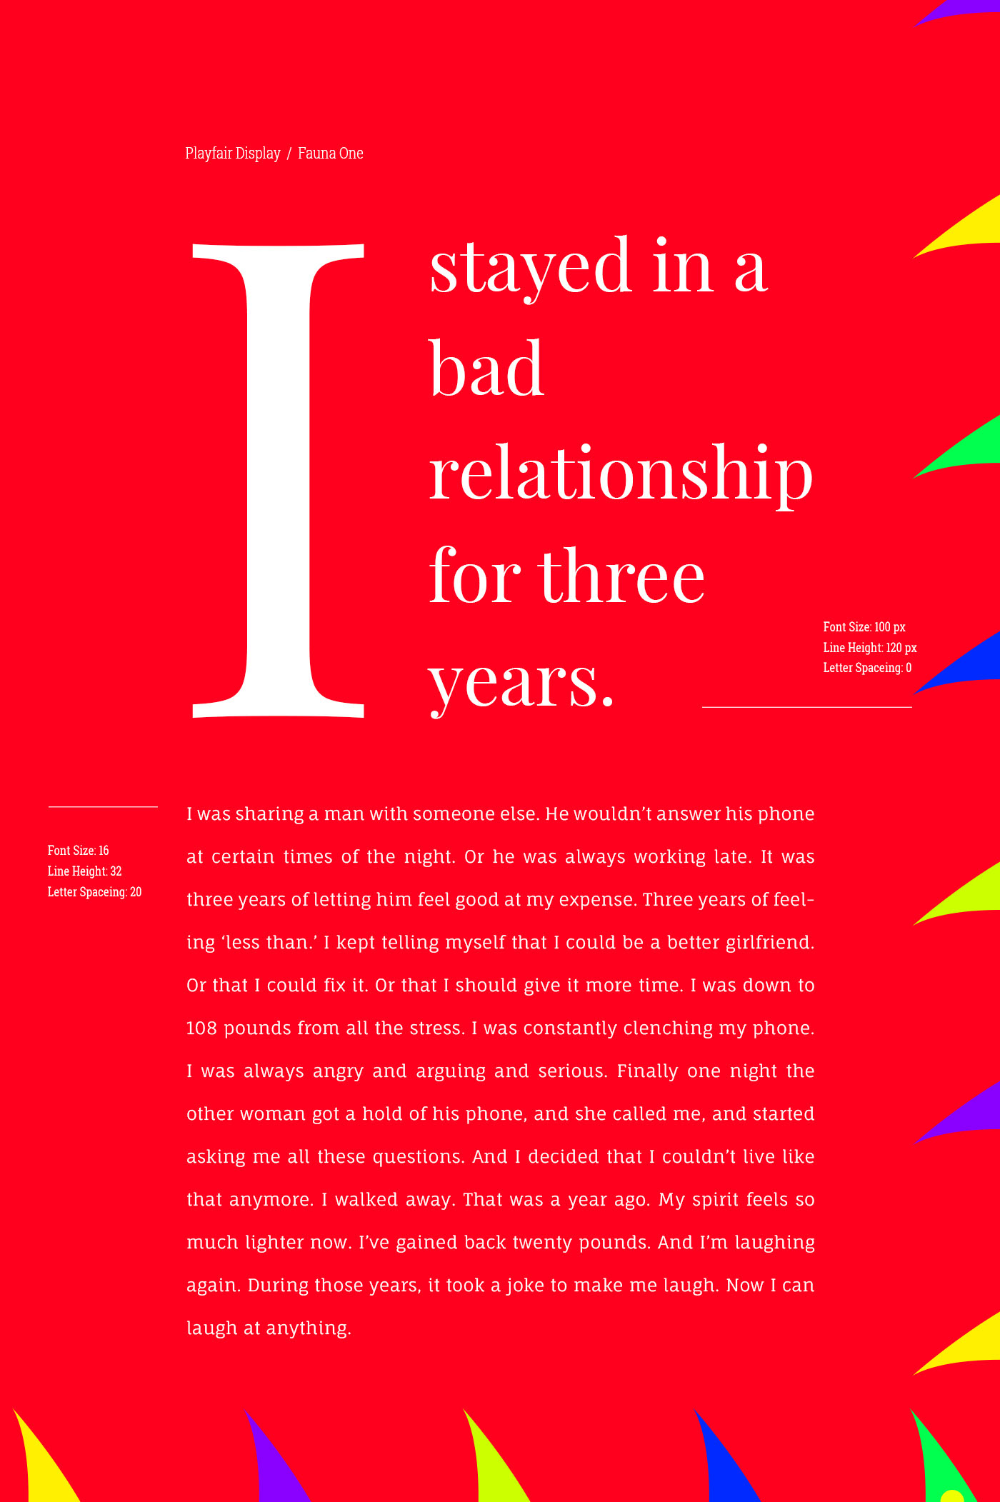 10 Great Google Font Combinations For Your Next Design